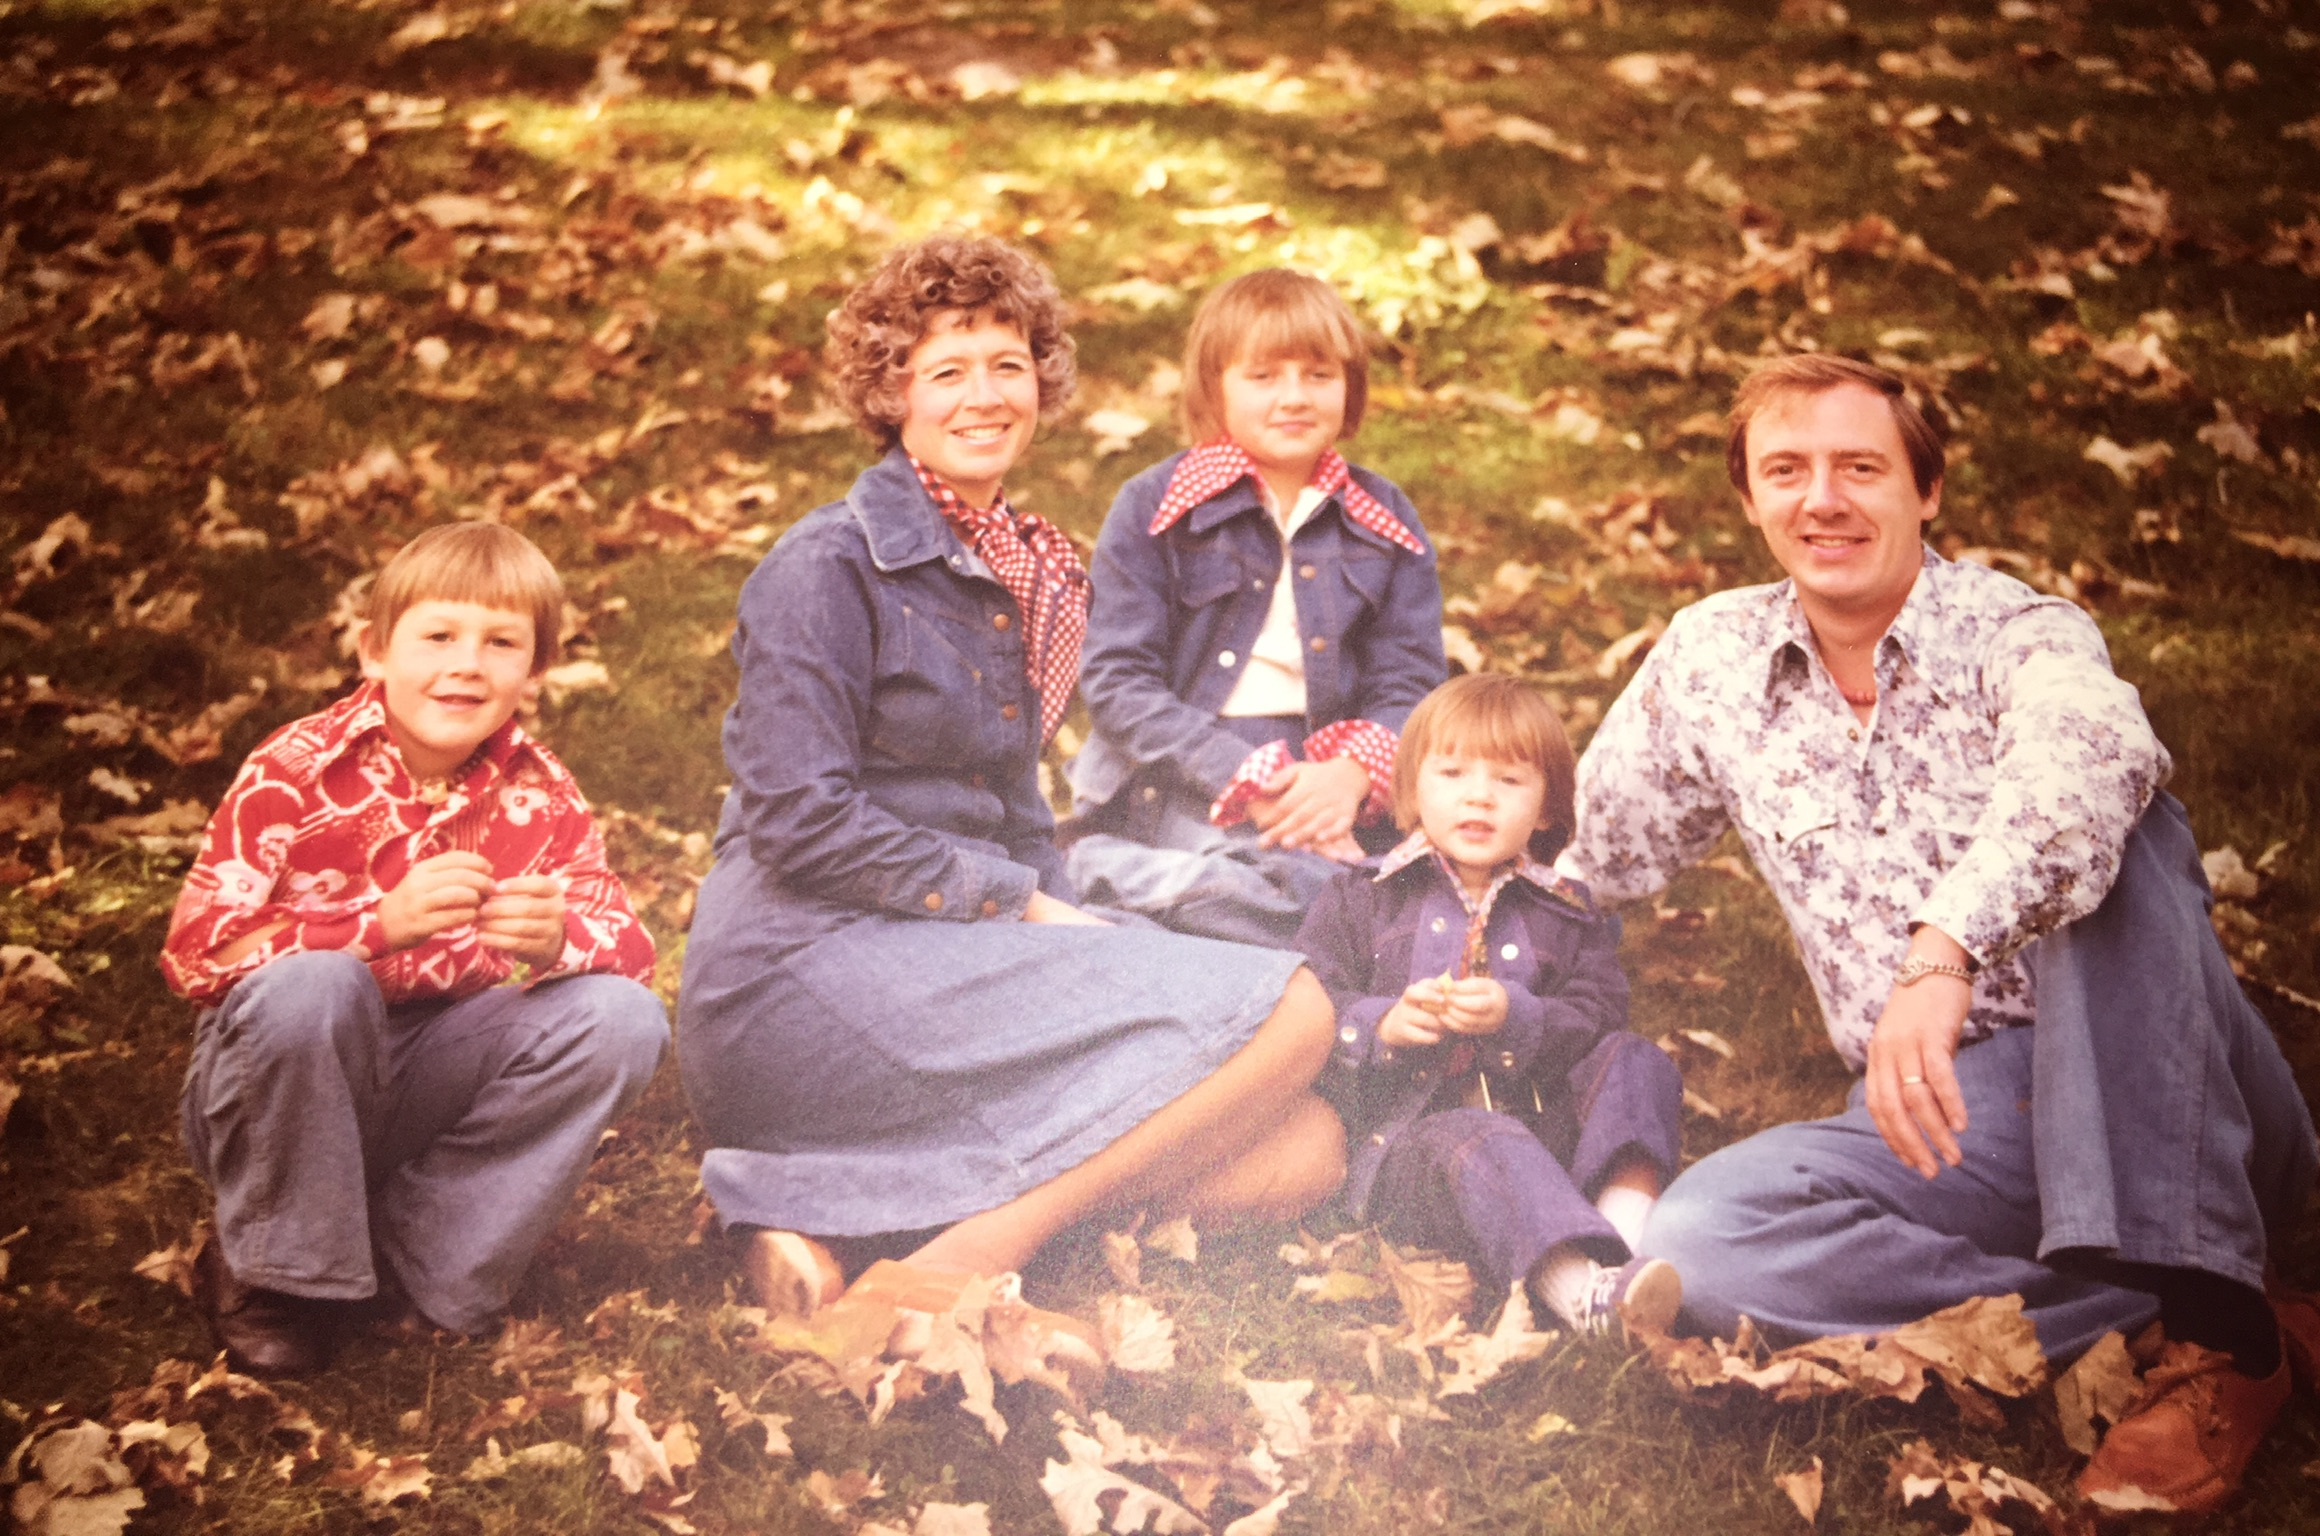 The Schmitz family - Rockin' the 70's in Style!